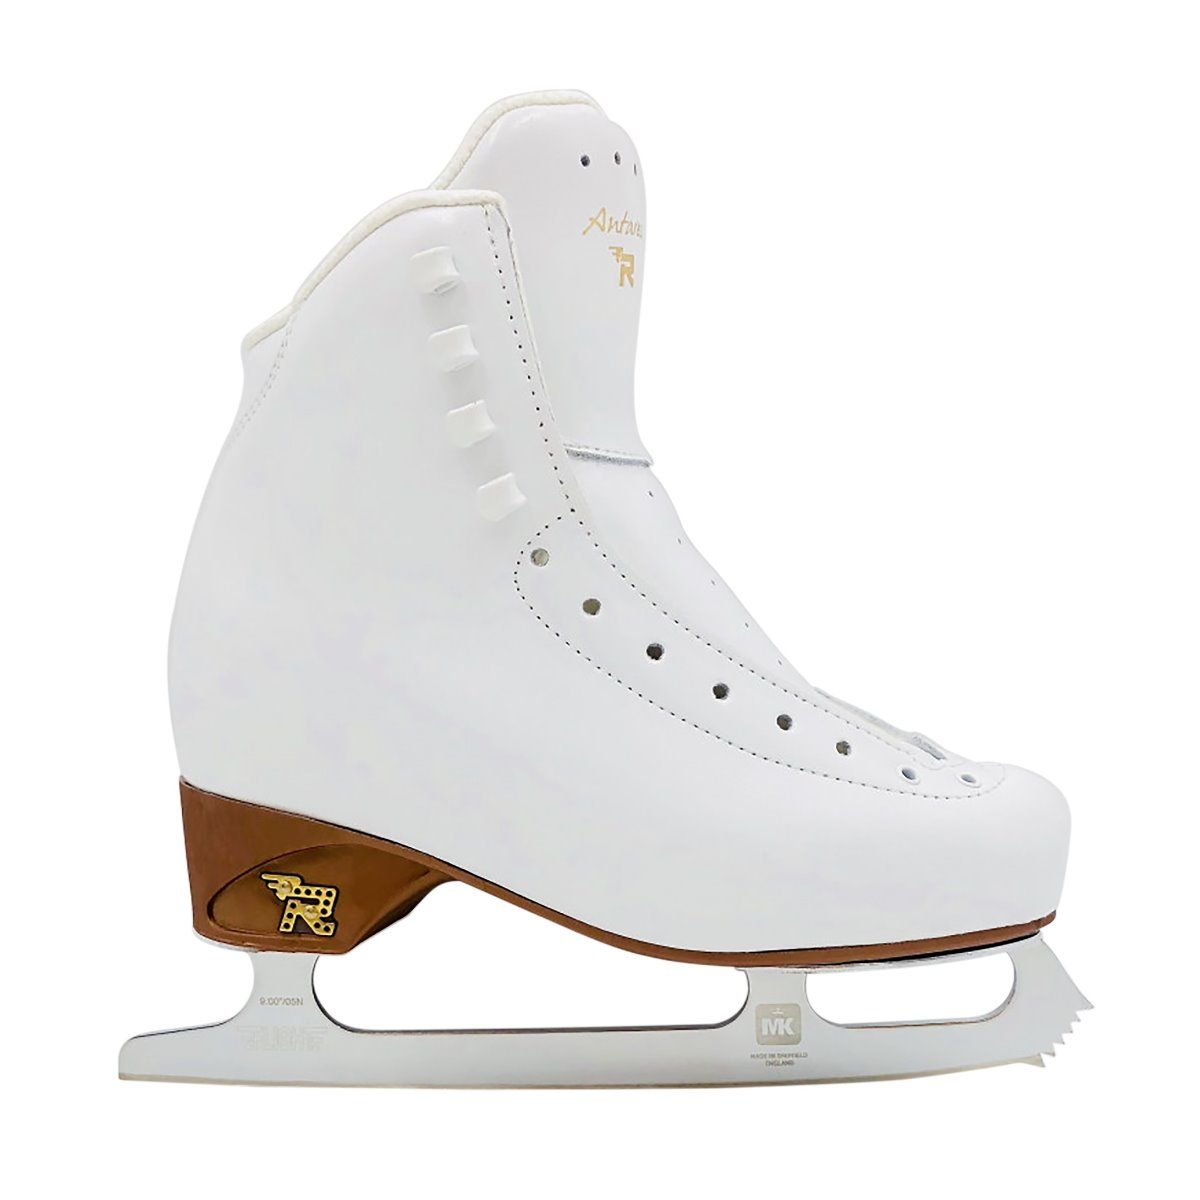 Risport Antares & MK Flight blade set